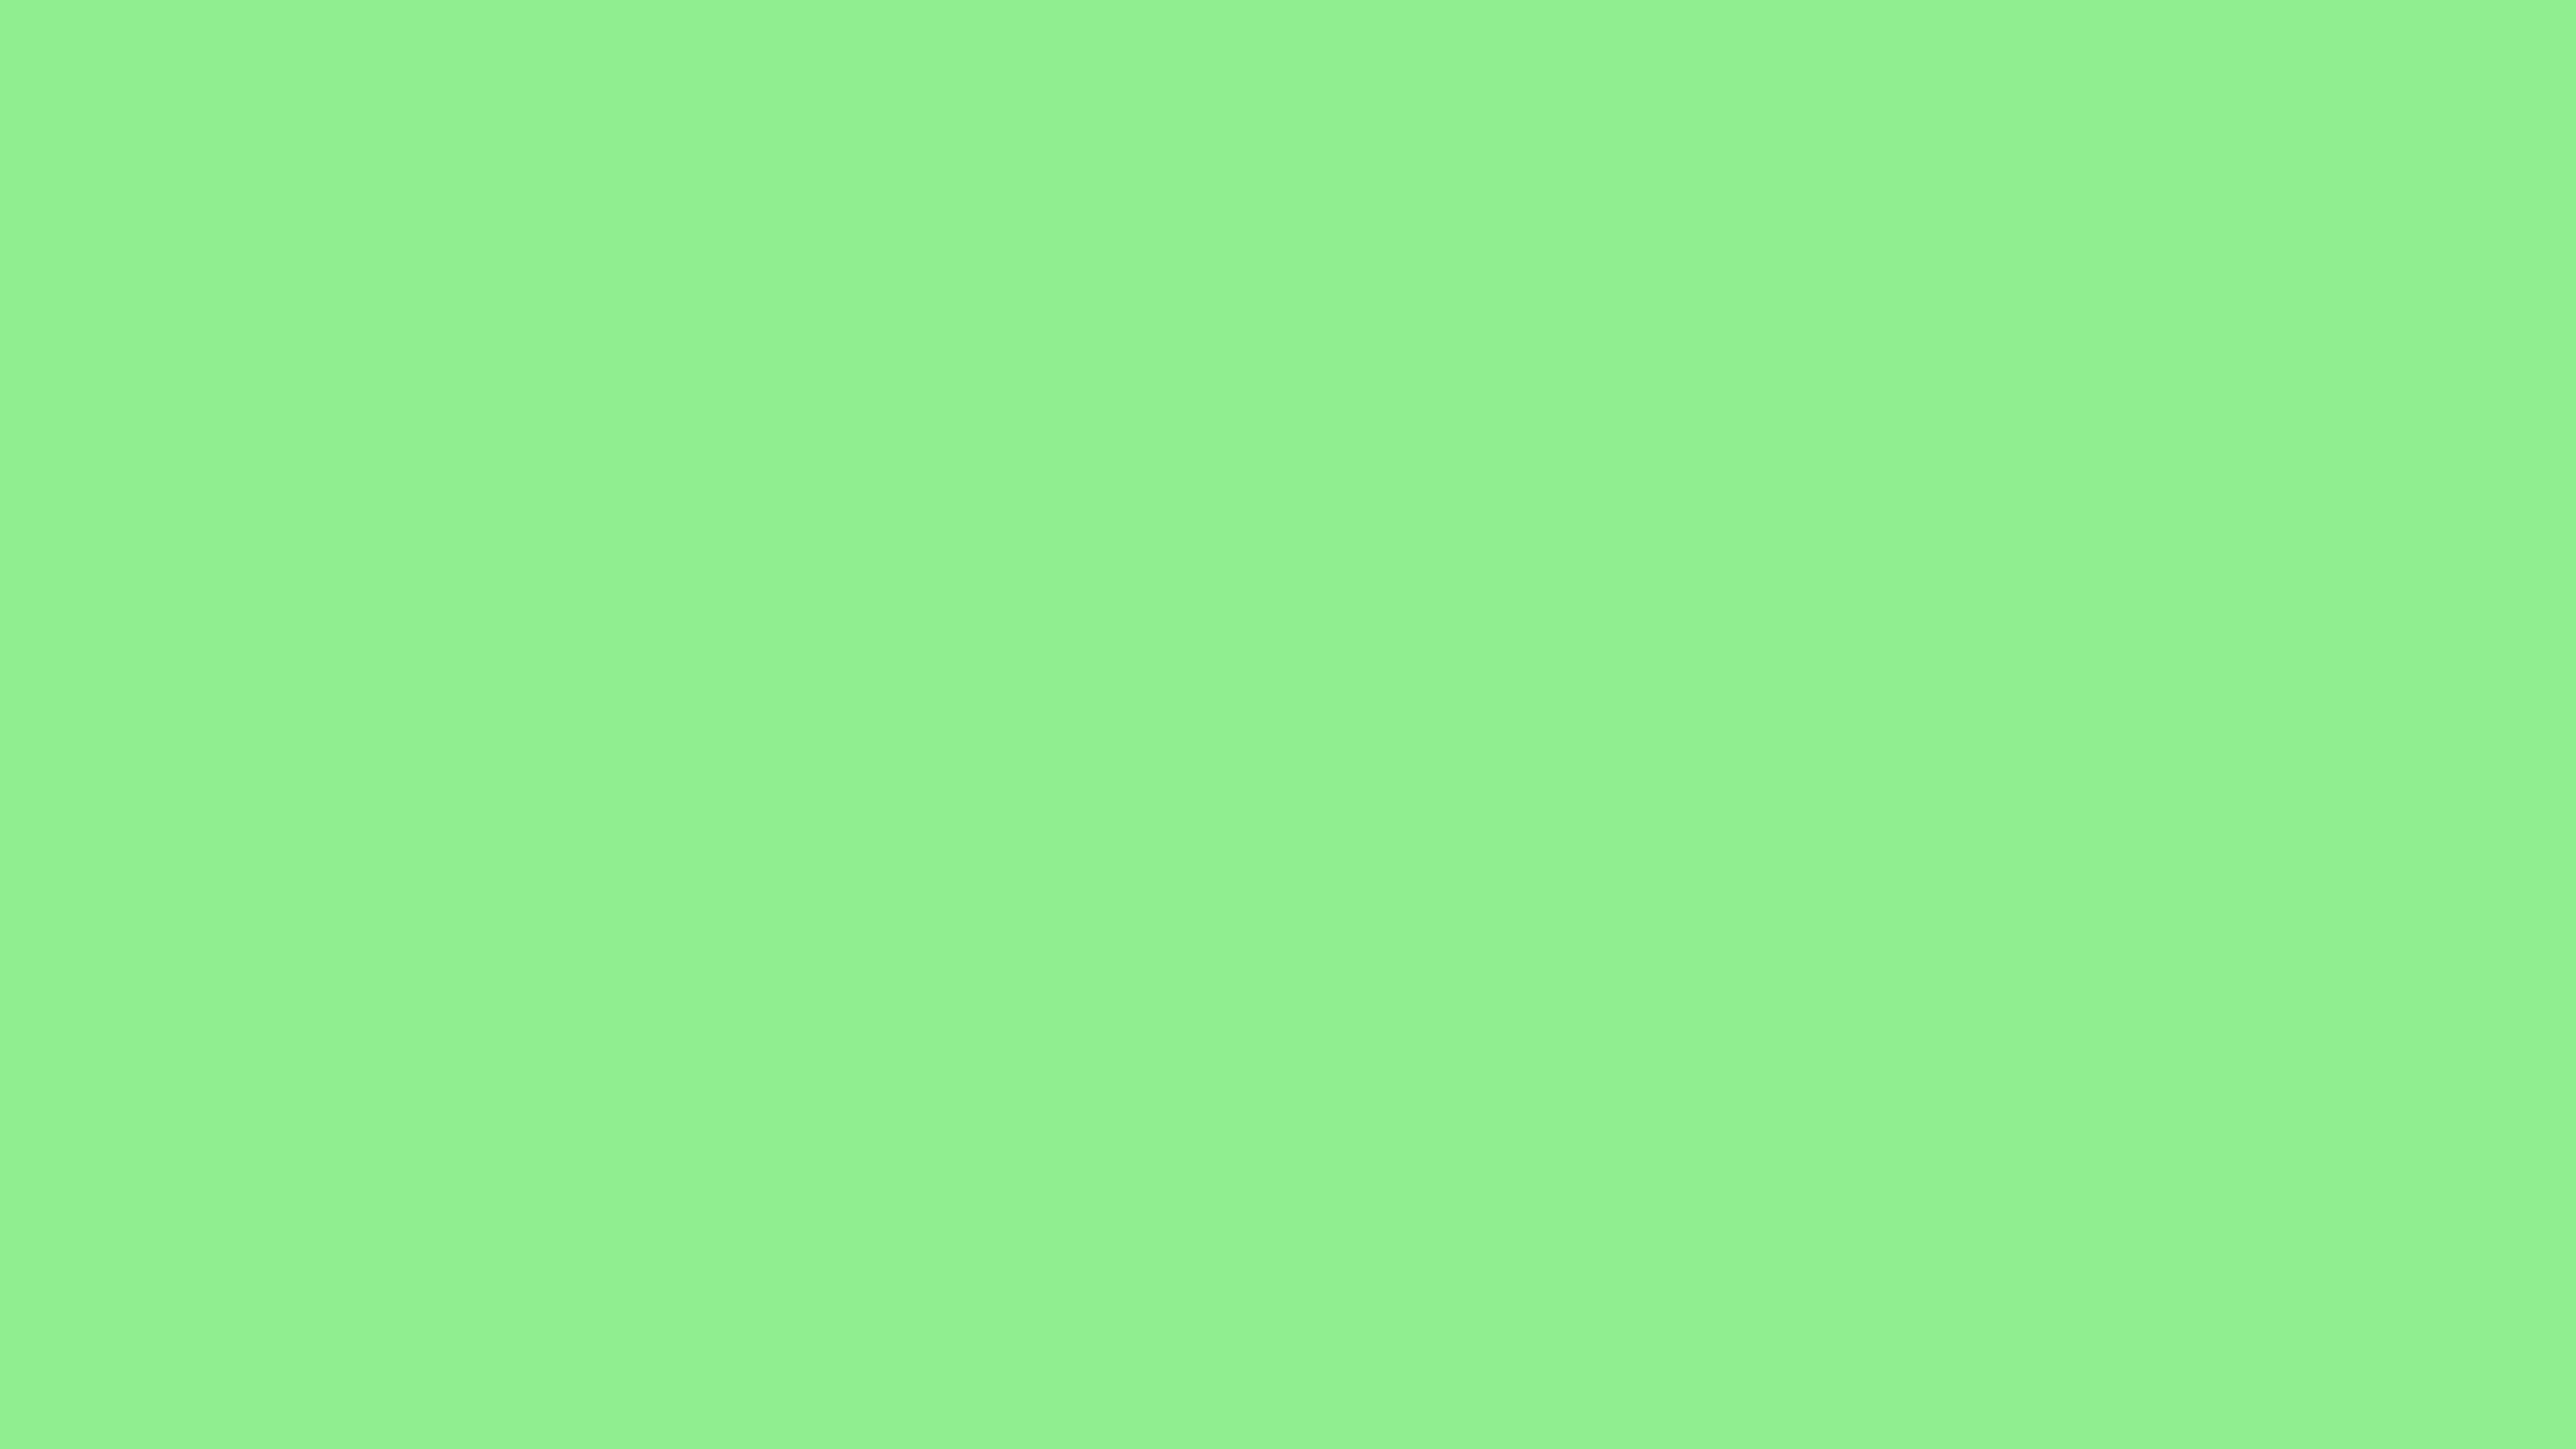 4096x2304 Light Green Solid Color Background